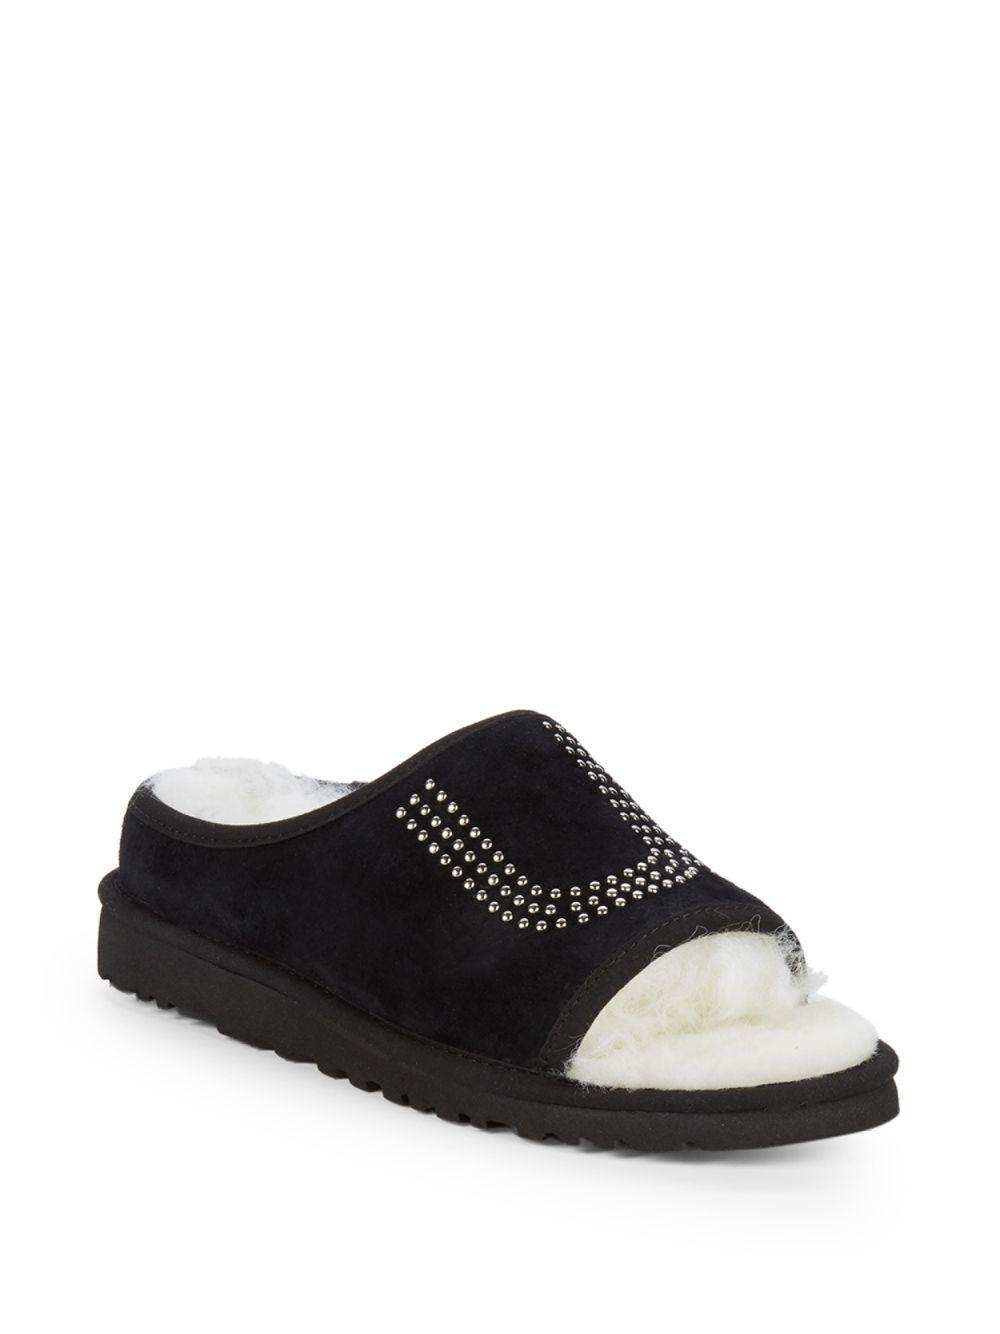 e9a054410ae Lyst - UGG Studded Dyed Shearling Slide Slippers in Black - Save 22%